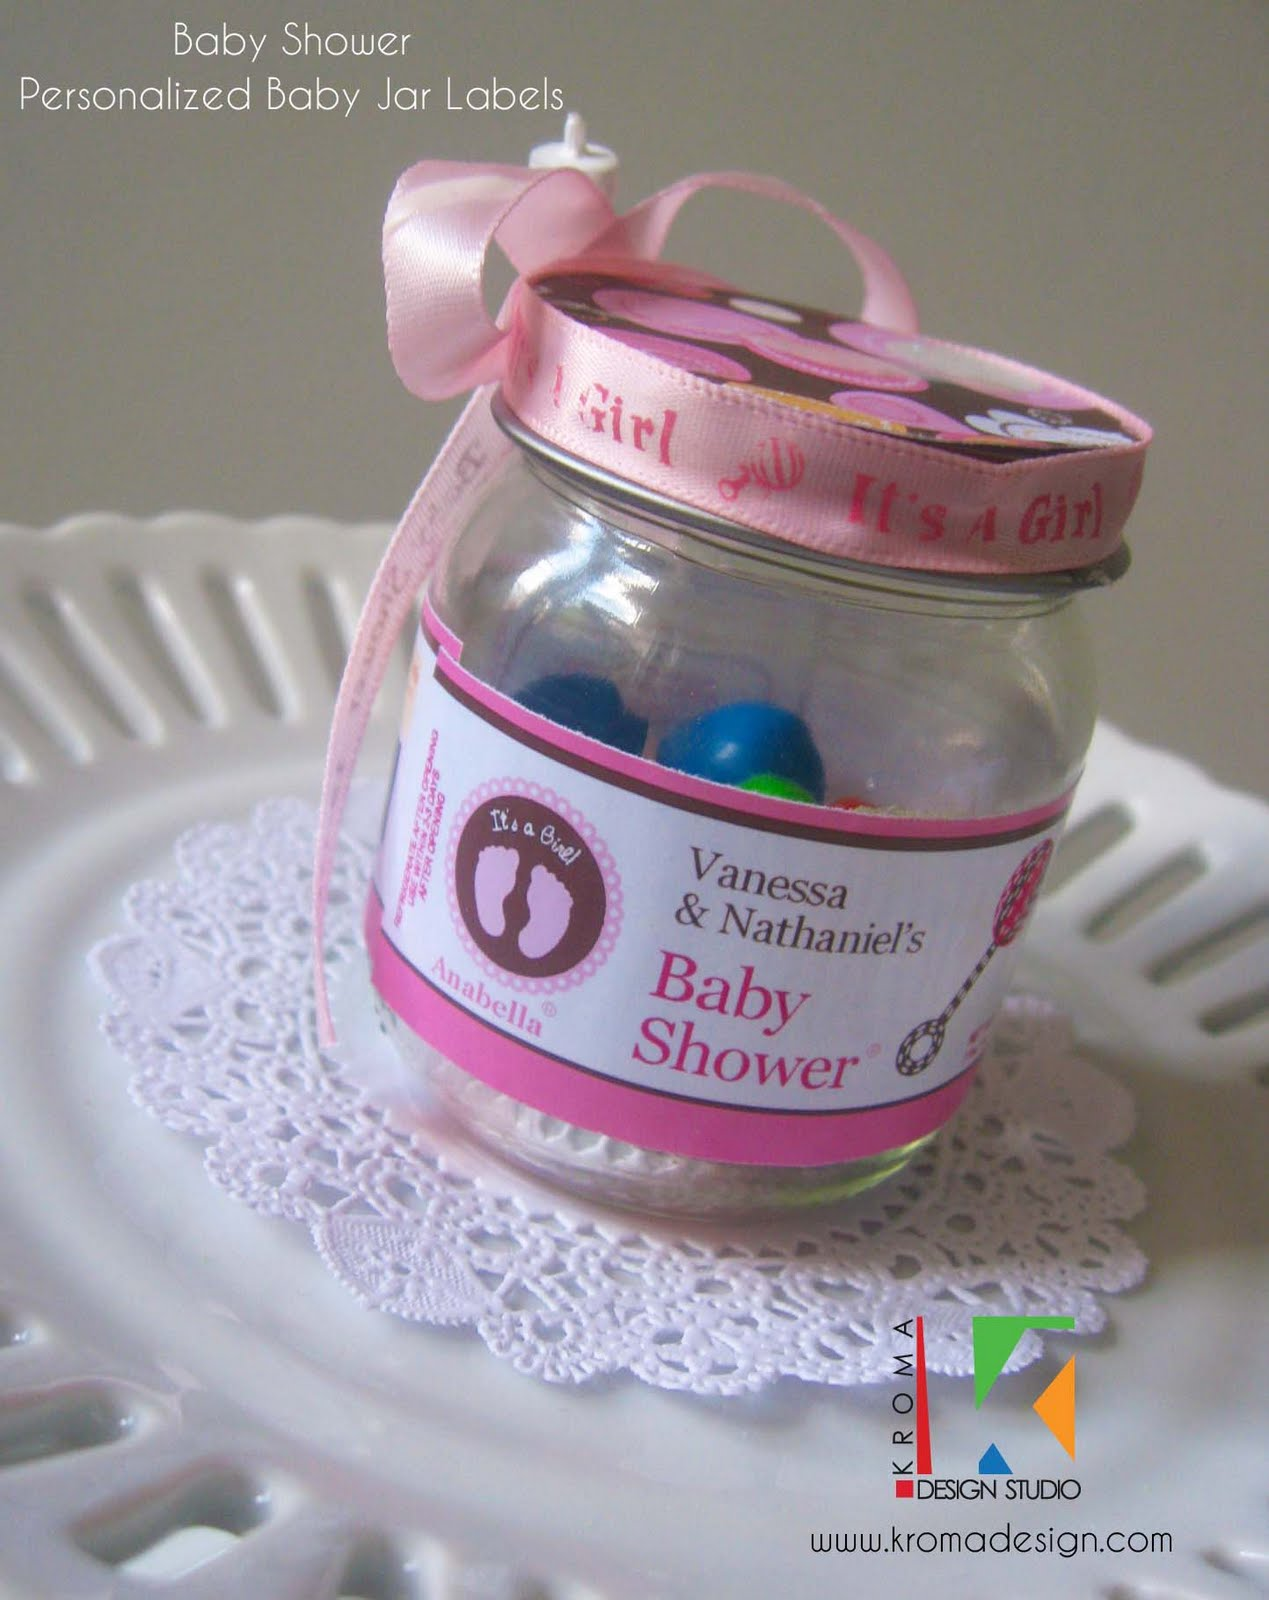 baby showers diy printable baby jar label favors for baby showers